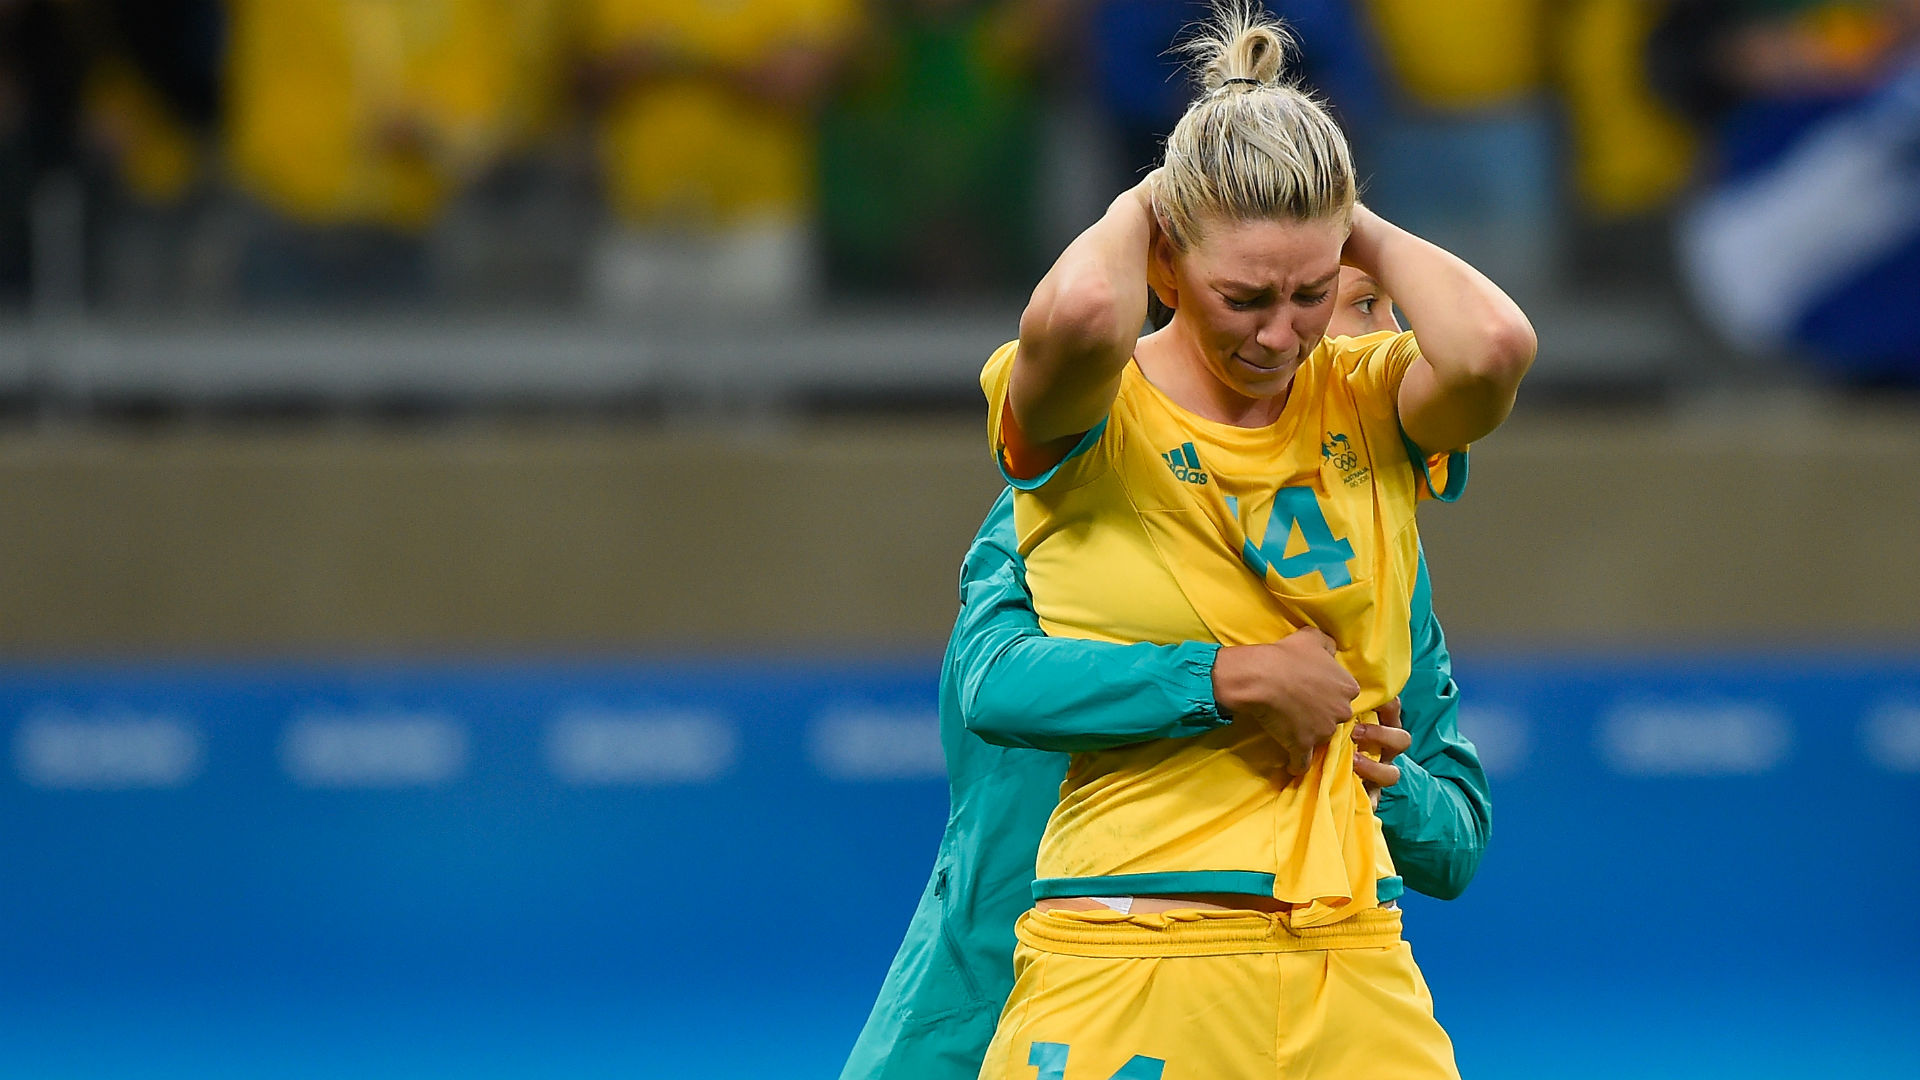 Matildas' heartbreak: lose to Brazil in shootout